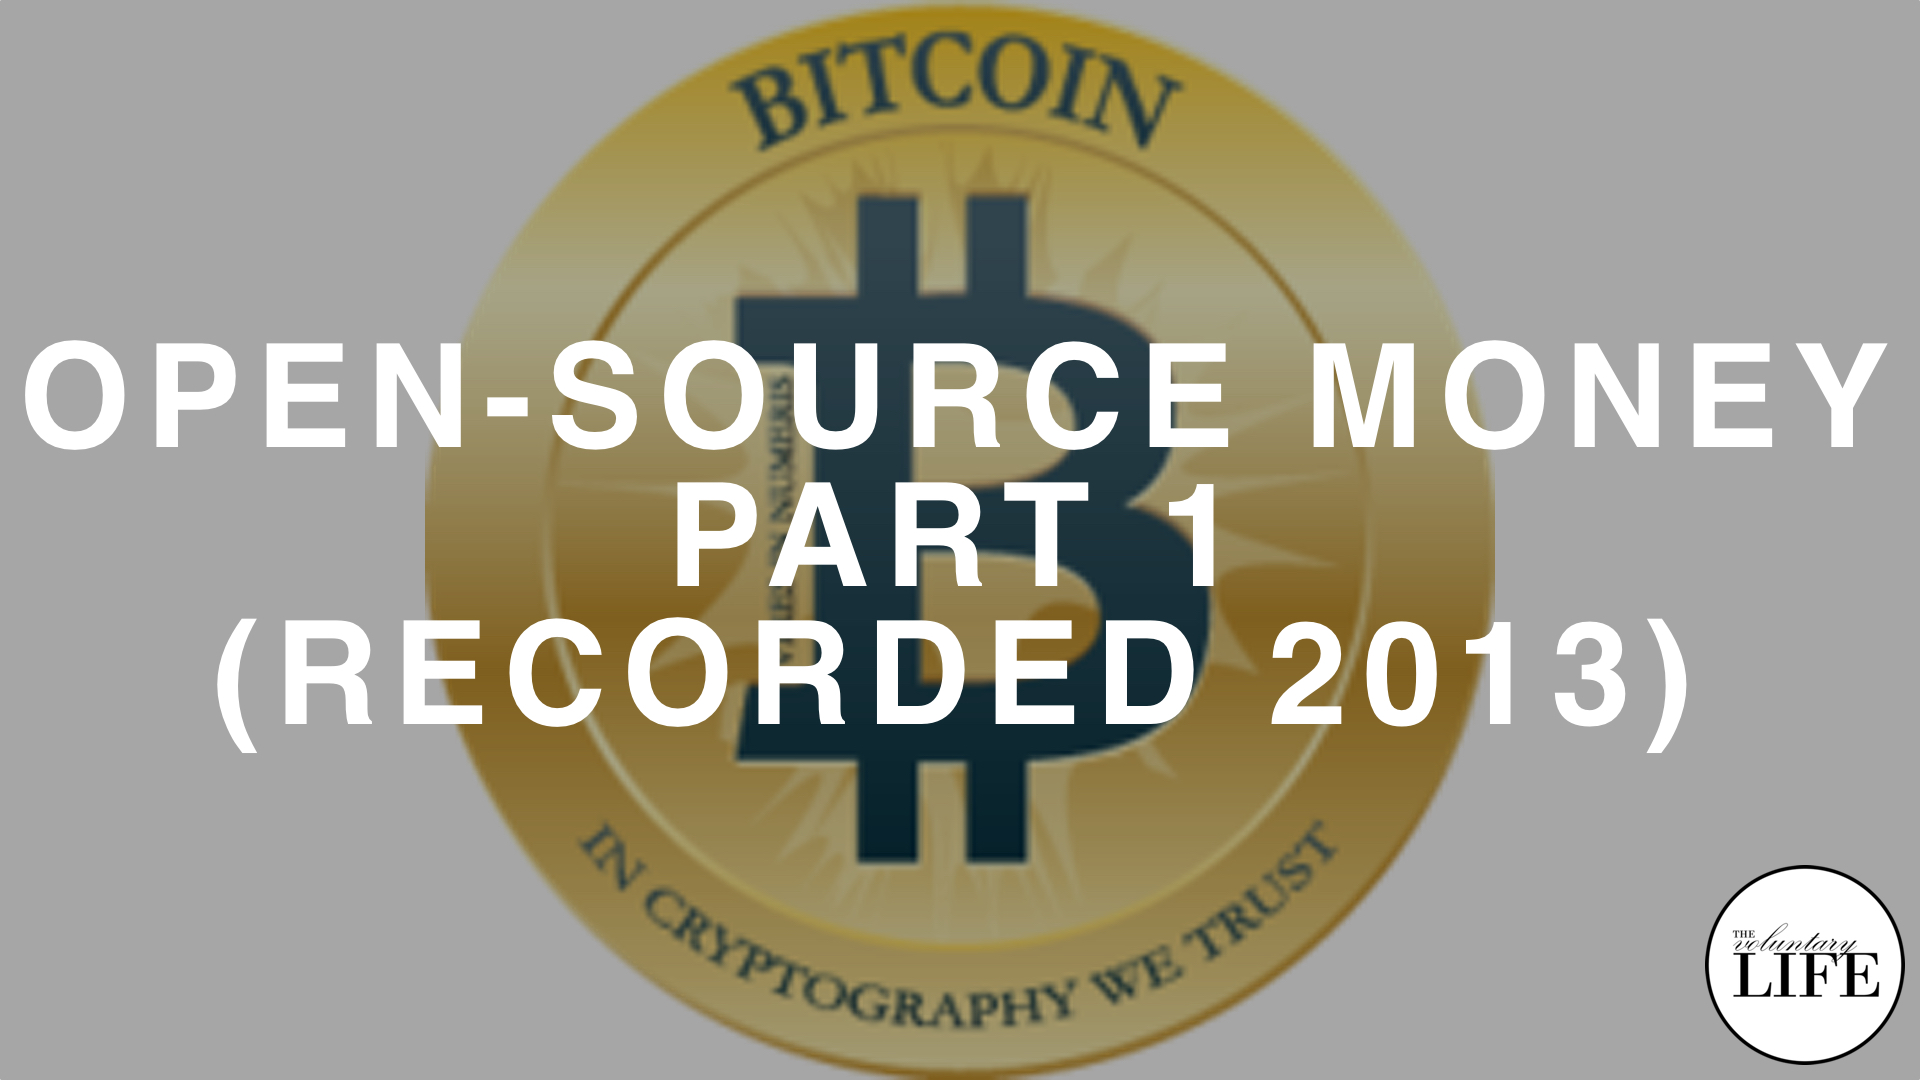 137 Open-Source Money Part 1: All About Bitcoin